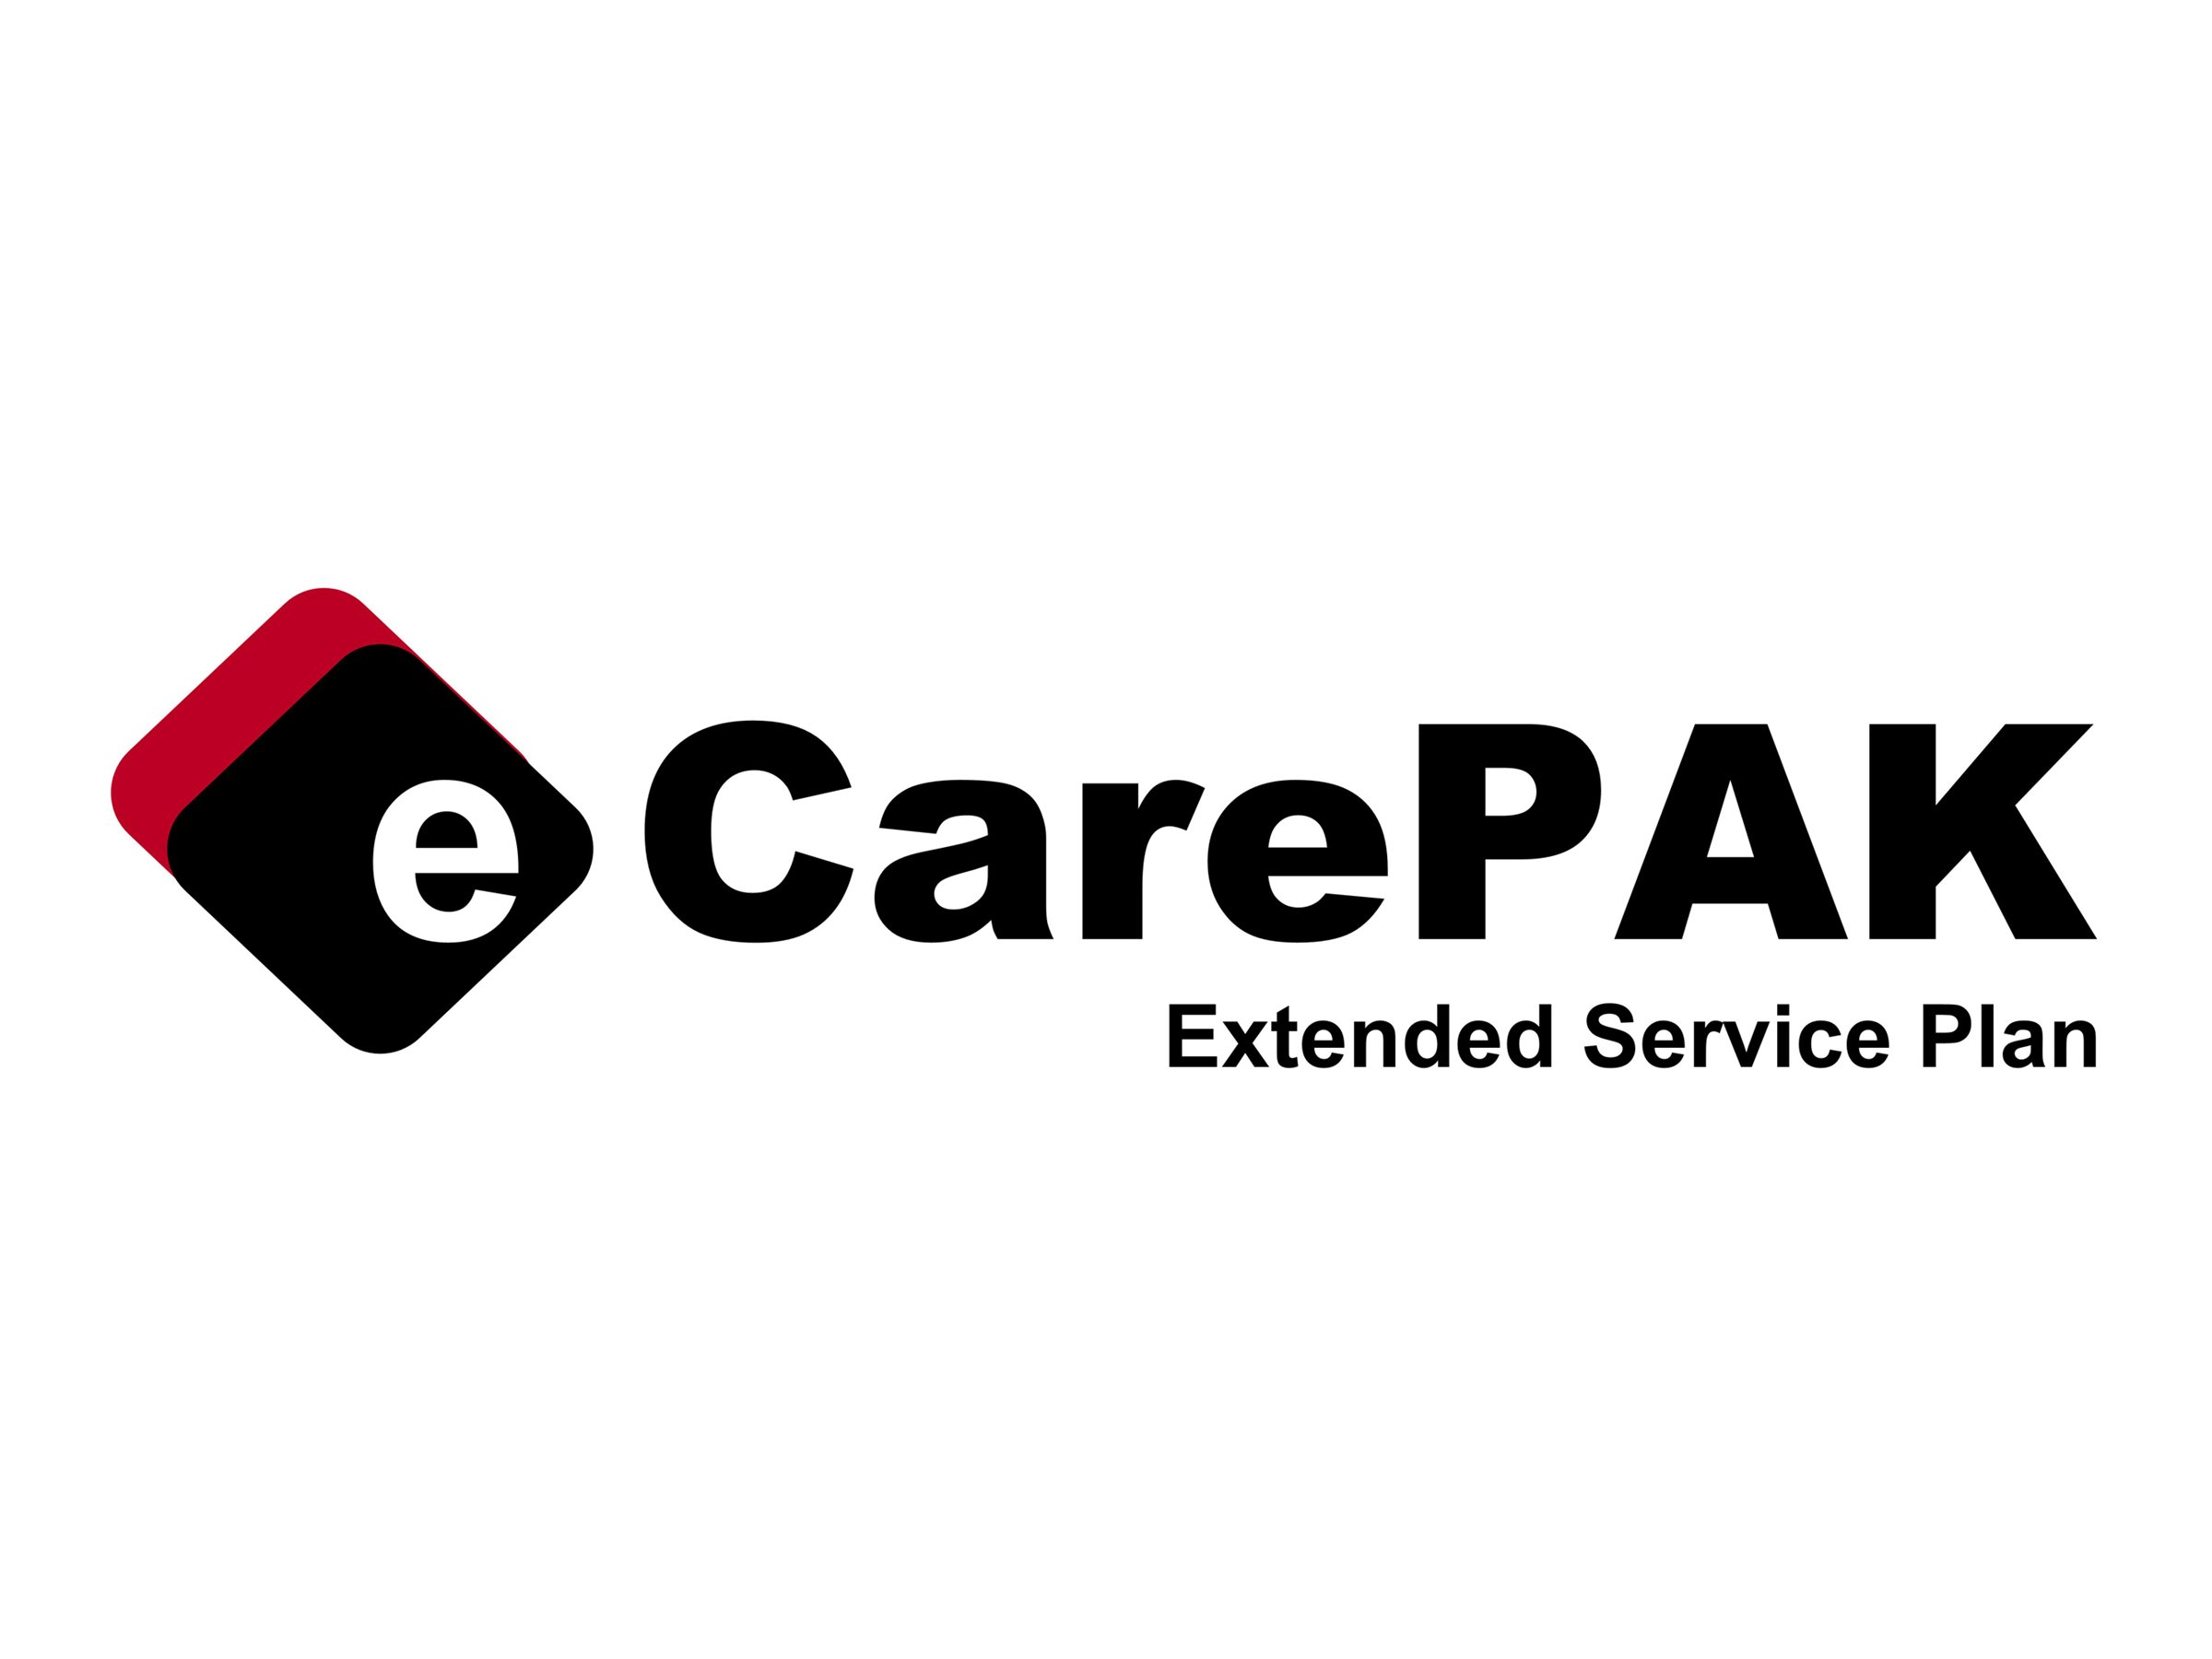 Canon eCarePAK Extended Service Plan On-Site Service Program - extended service agreement - 9 months - on-site